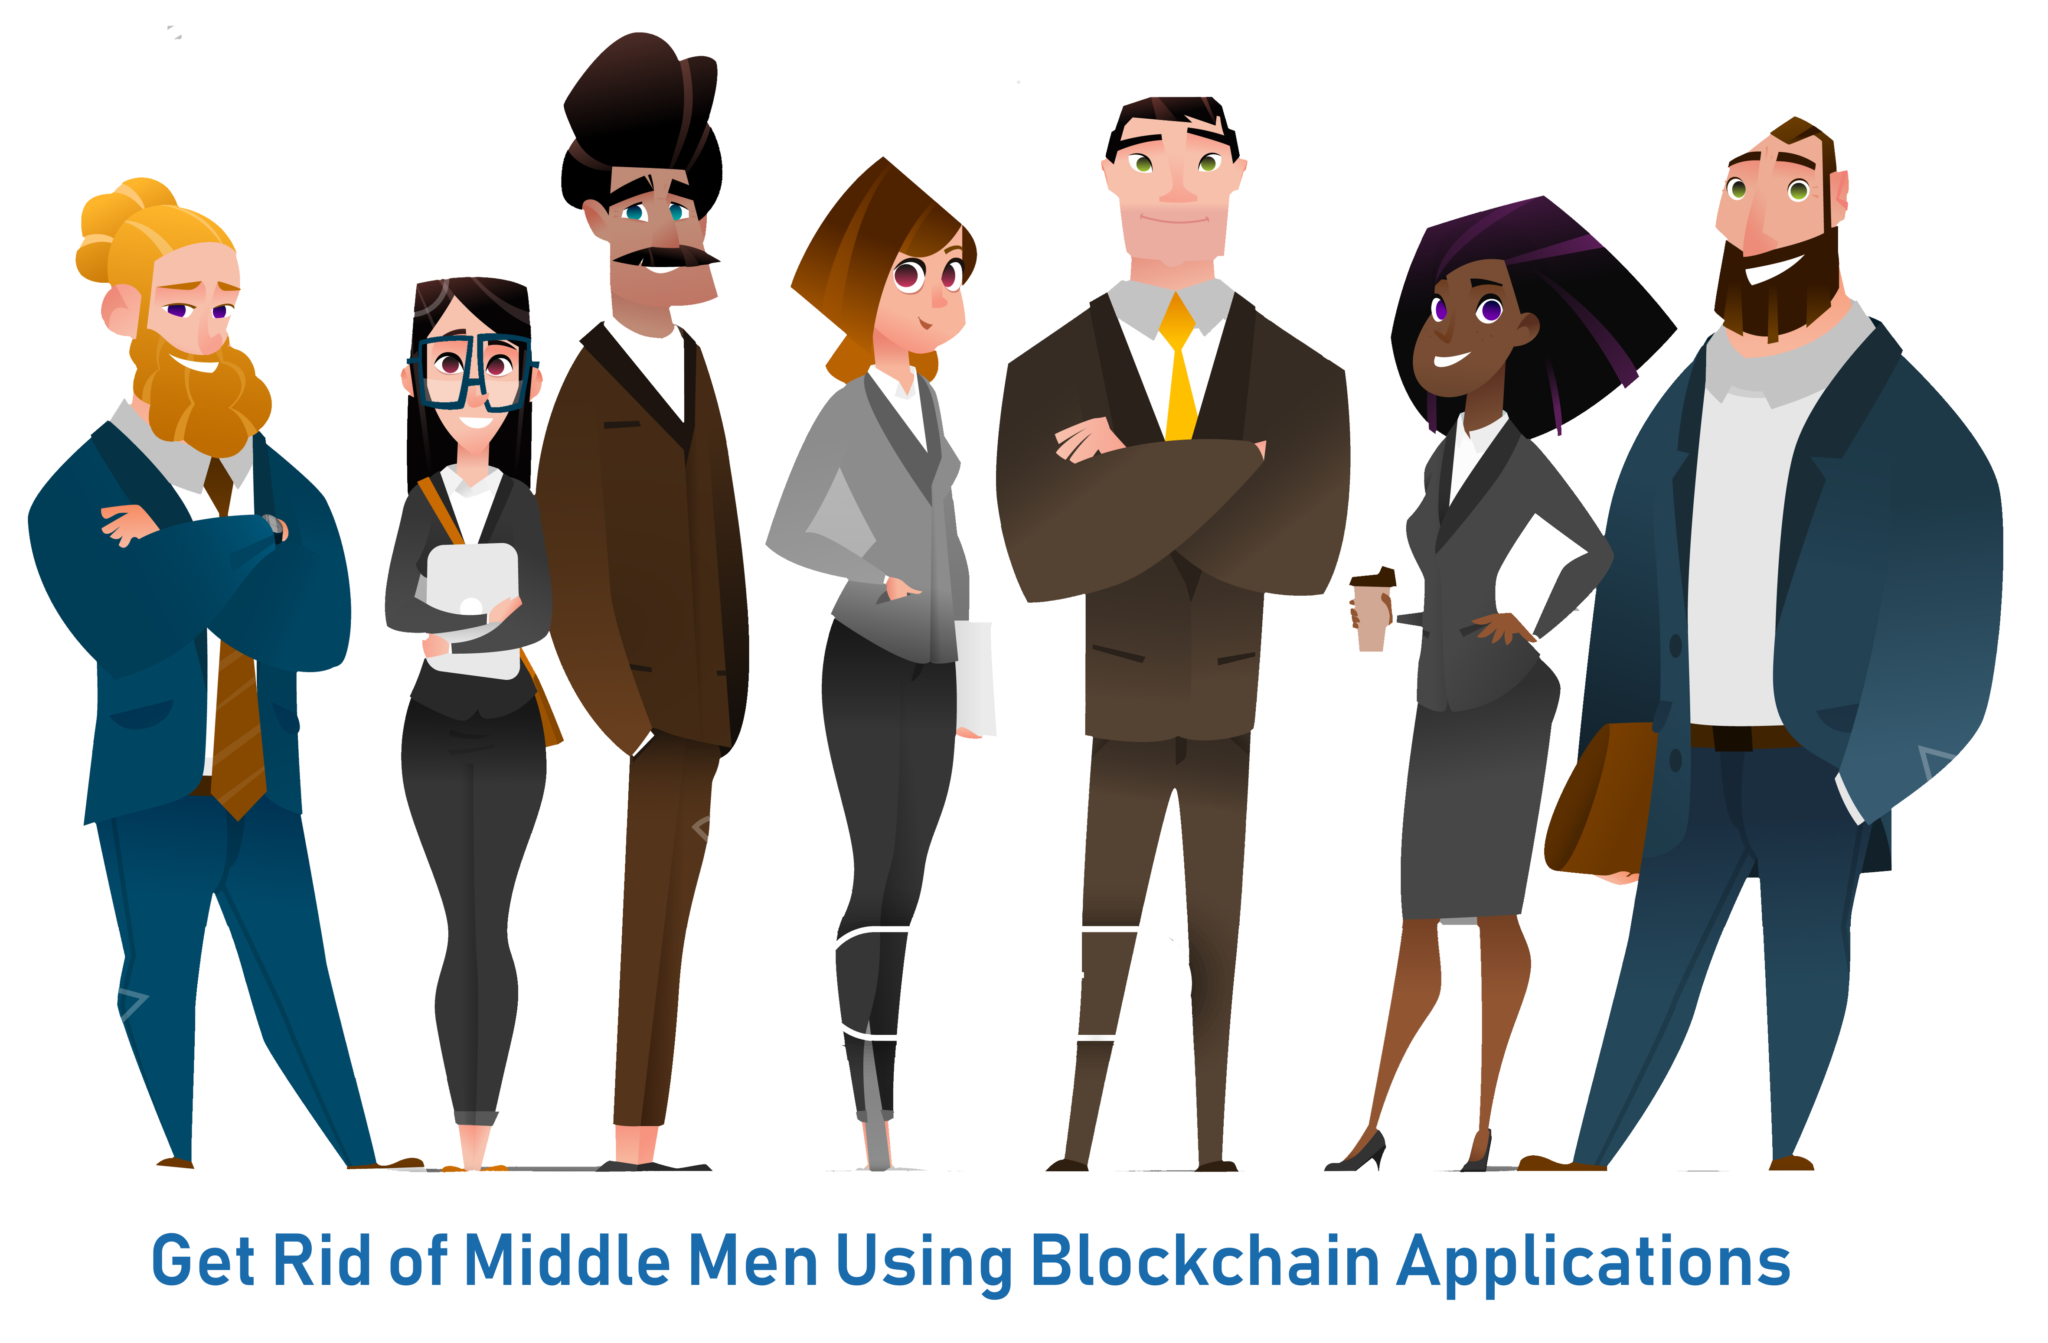 No middle men - Blockchain Applications - Edureka